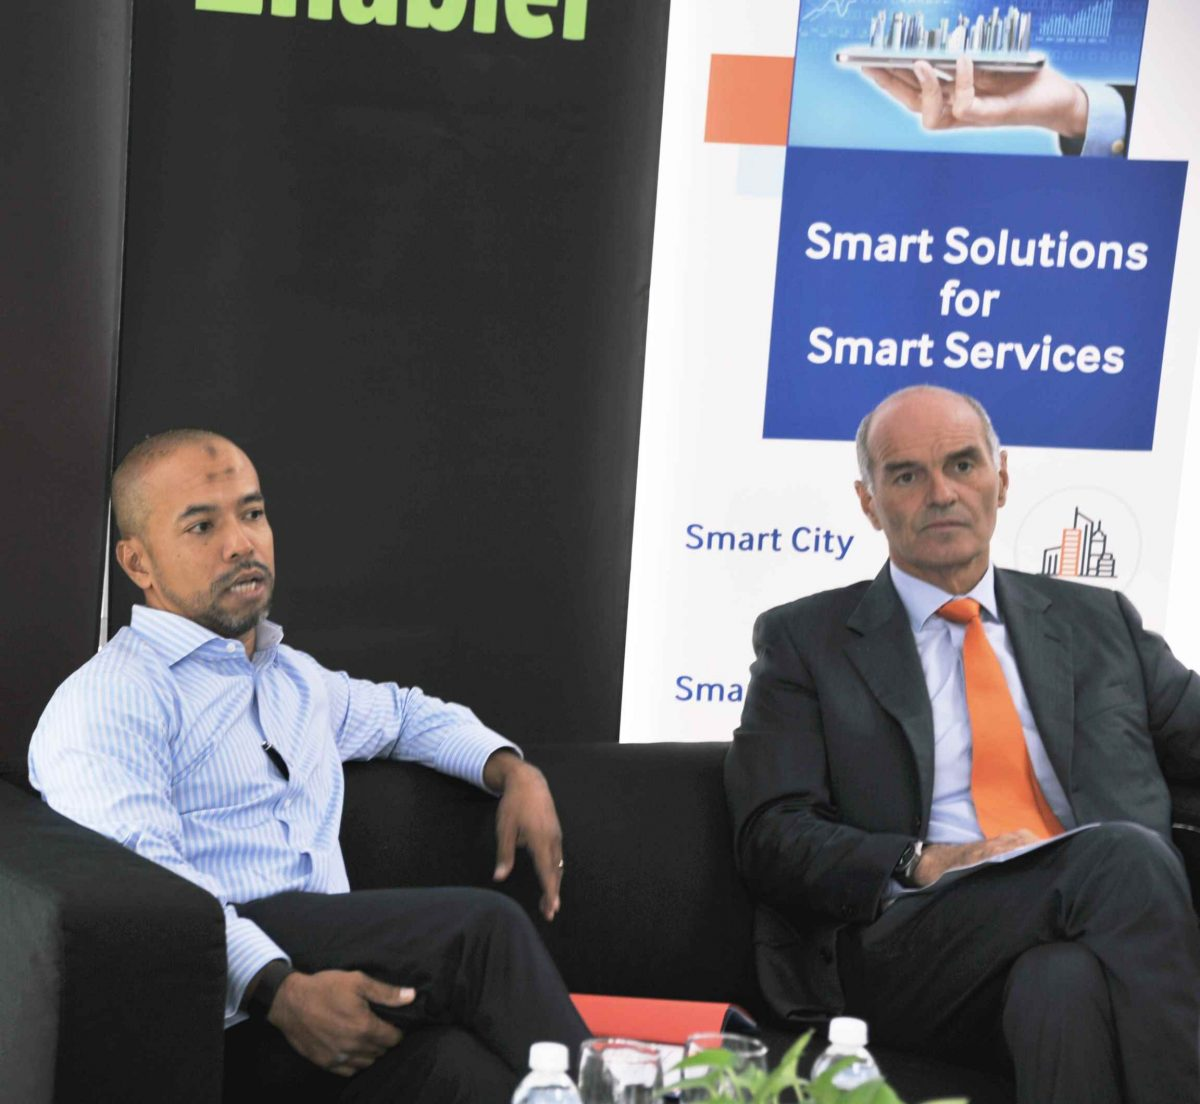 Dato Faris Yahaya, Managing Director of Cyberview Sdn Bhd and Mr Massimo Migliulo, Chief Executive Officer of VADS Lyfe Sdn Bhd